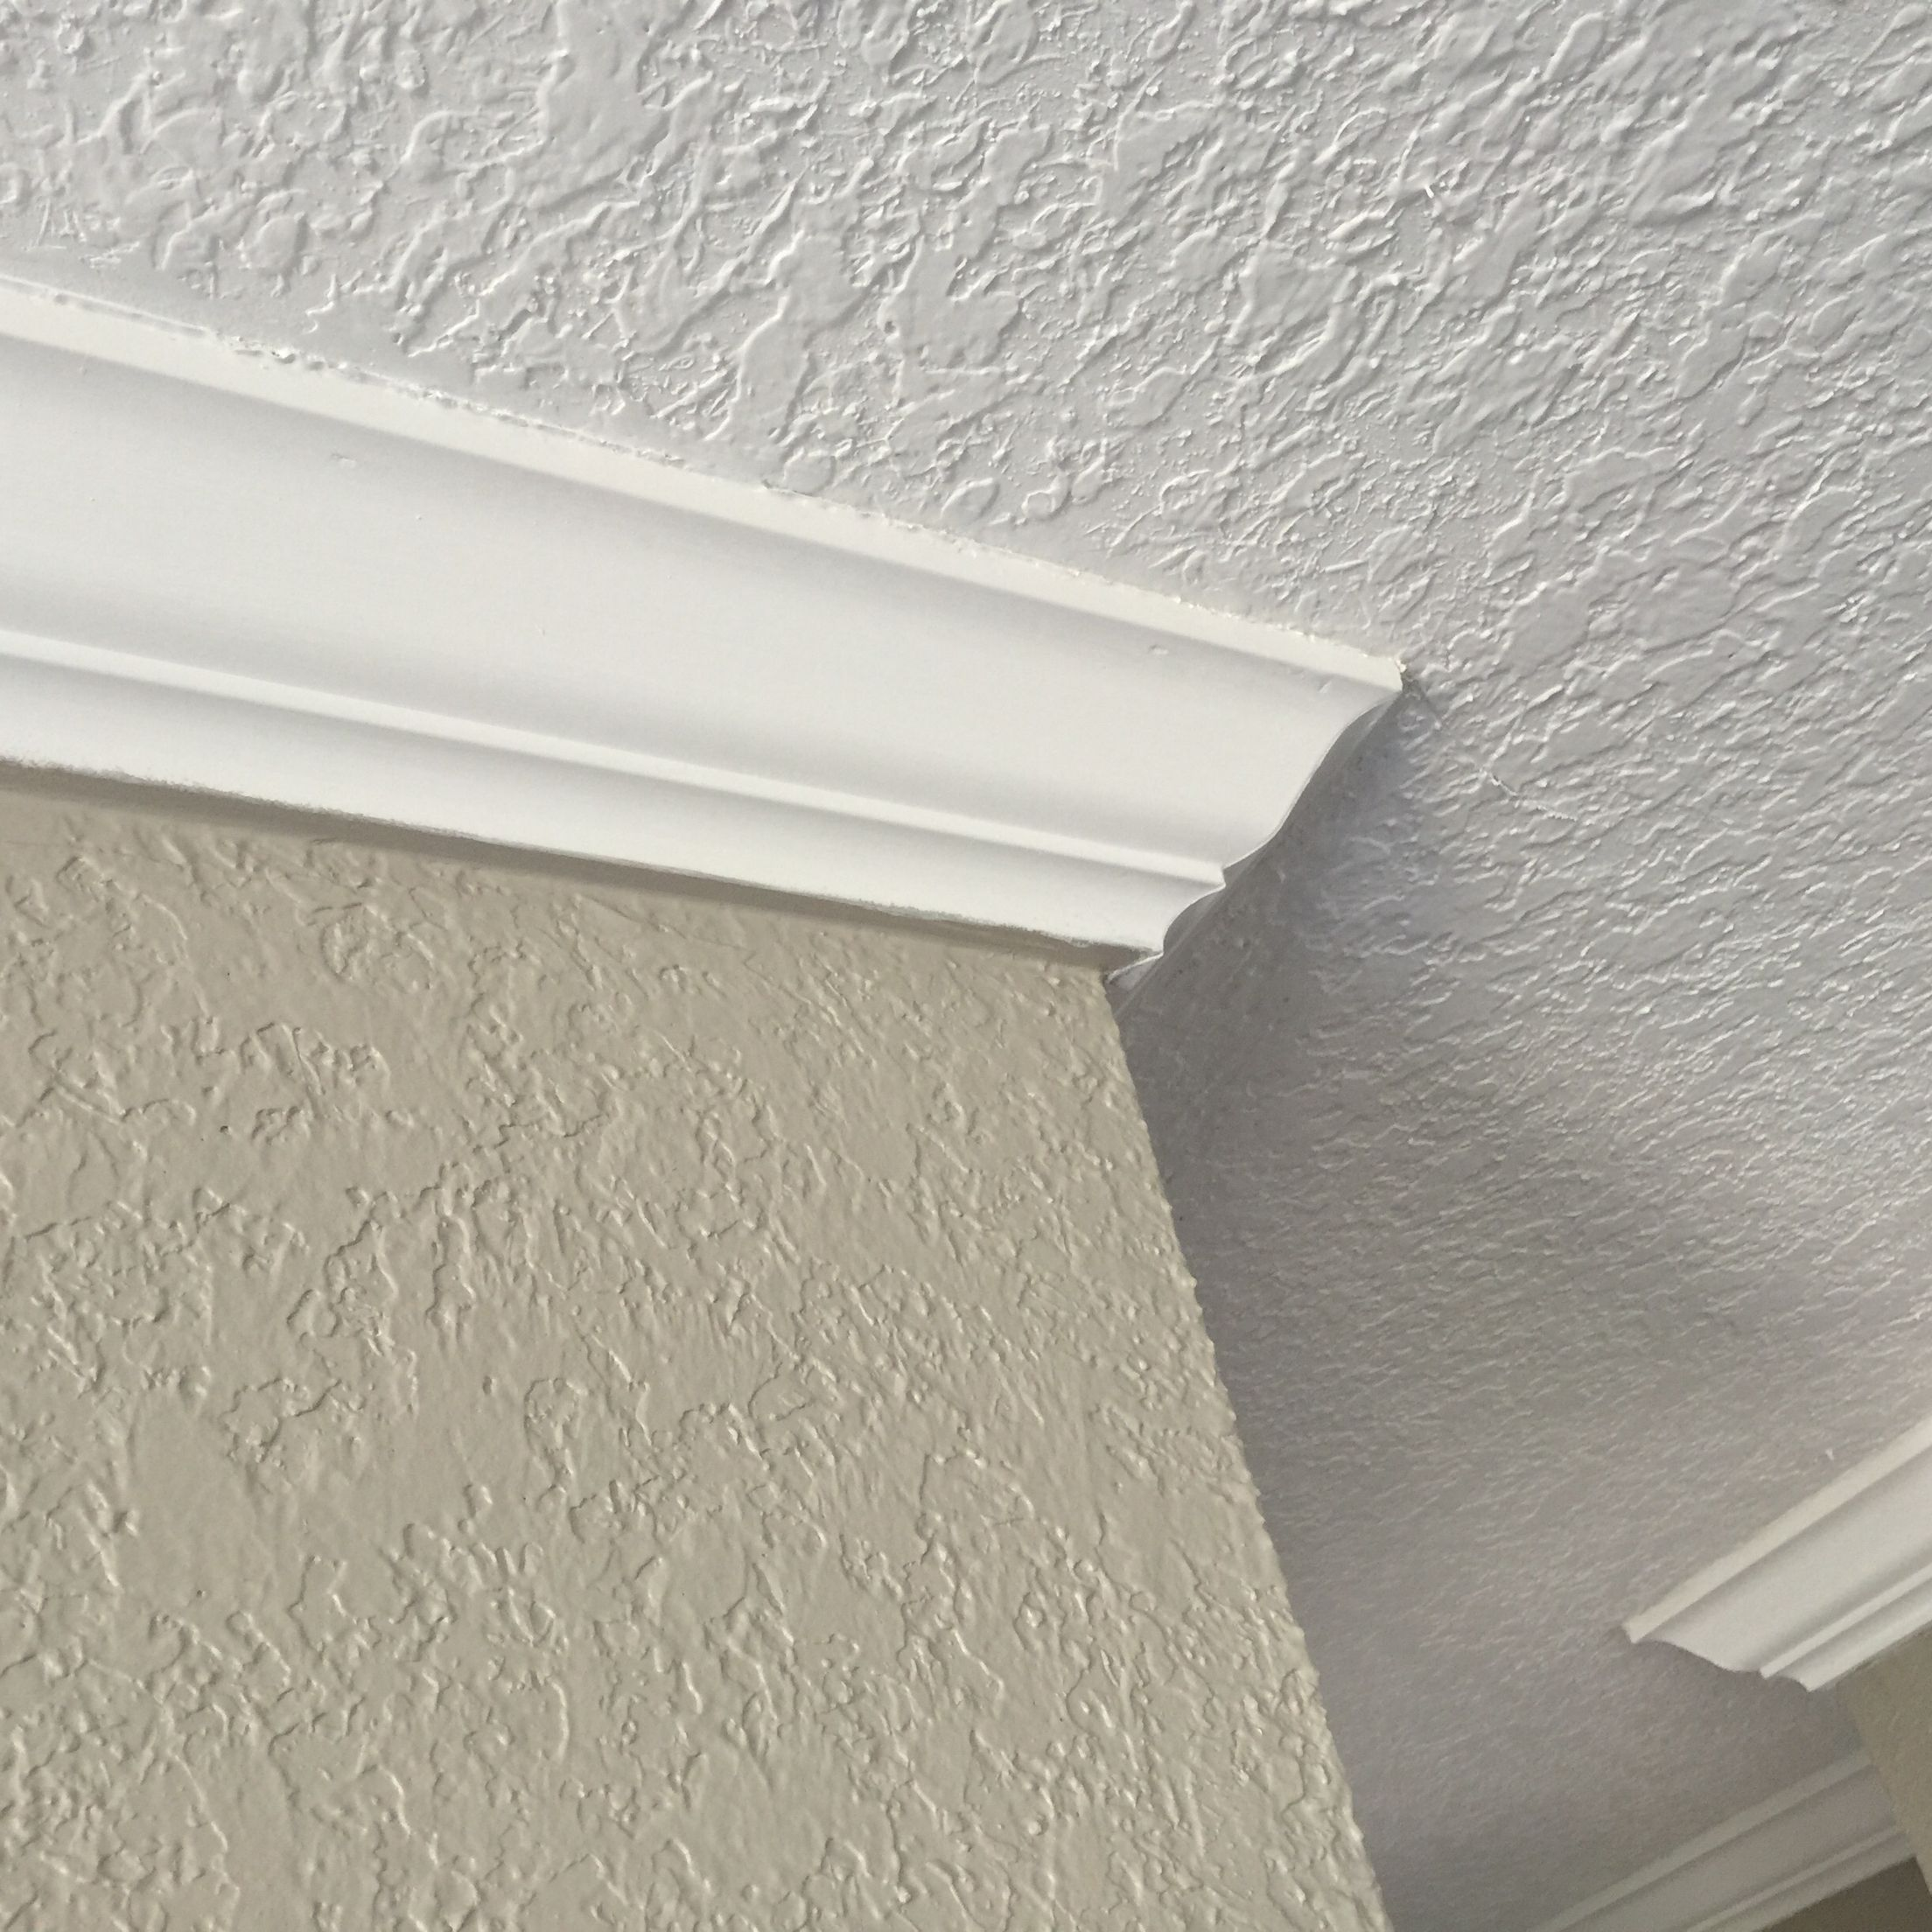 Knockdown Textured Ceiling Knockdown Texture Applied And Crown Molding Dads House